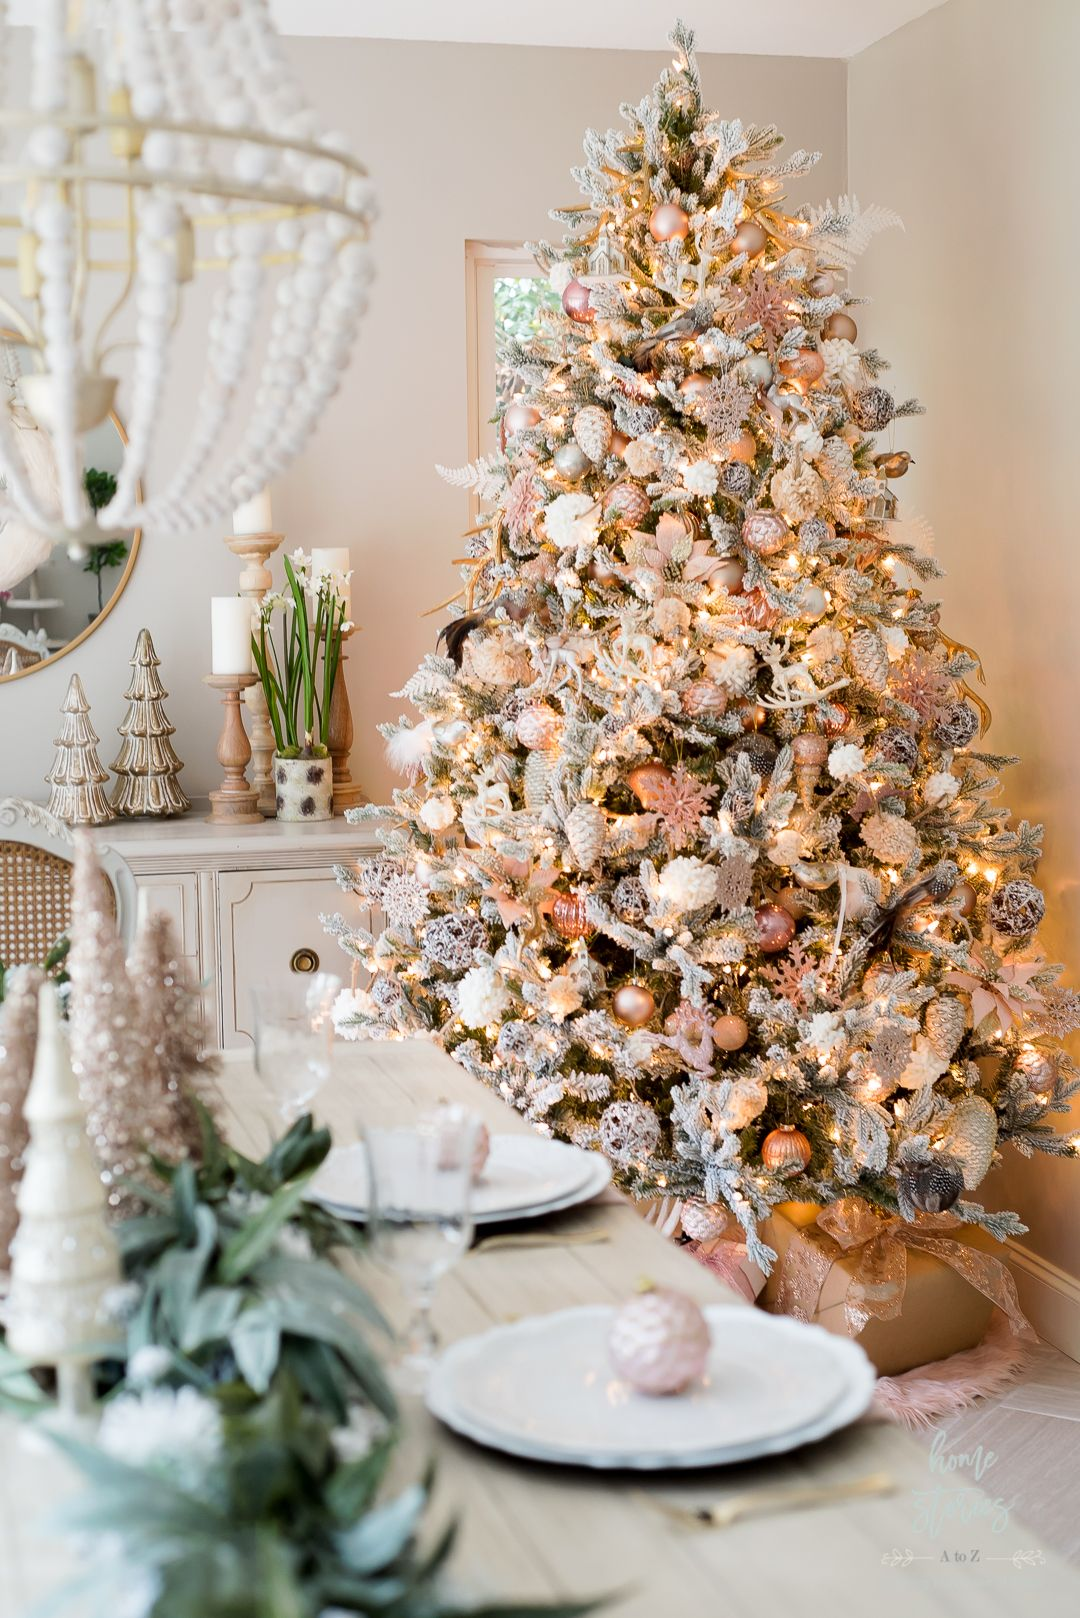 How To Decorate A Christmas Tree Like A Designer Step By Step Video Christmas Table Settings Christmas Tree Design Christmas Staircase